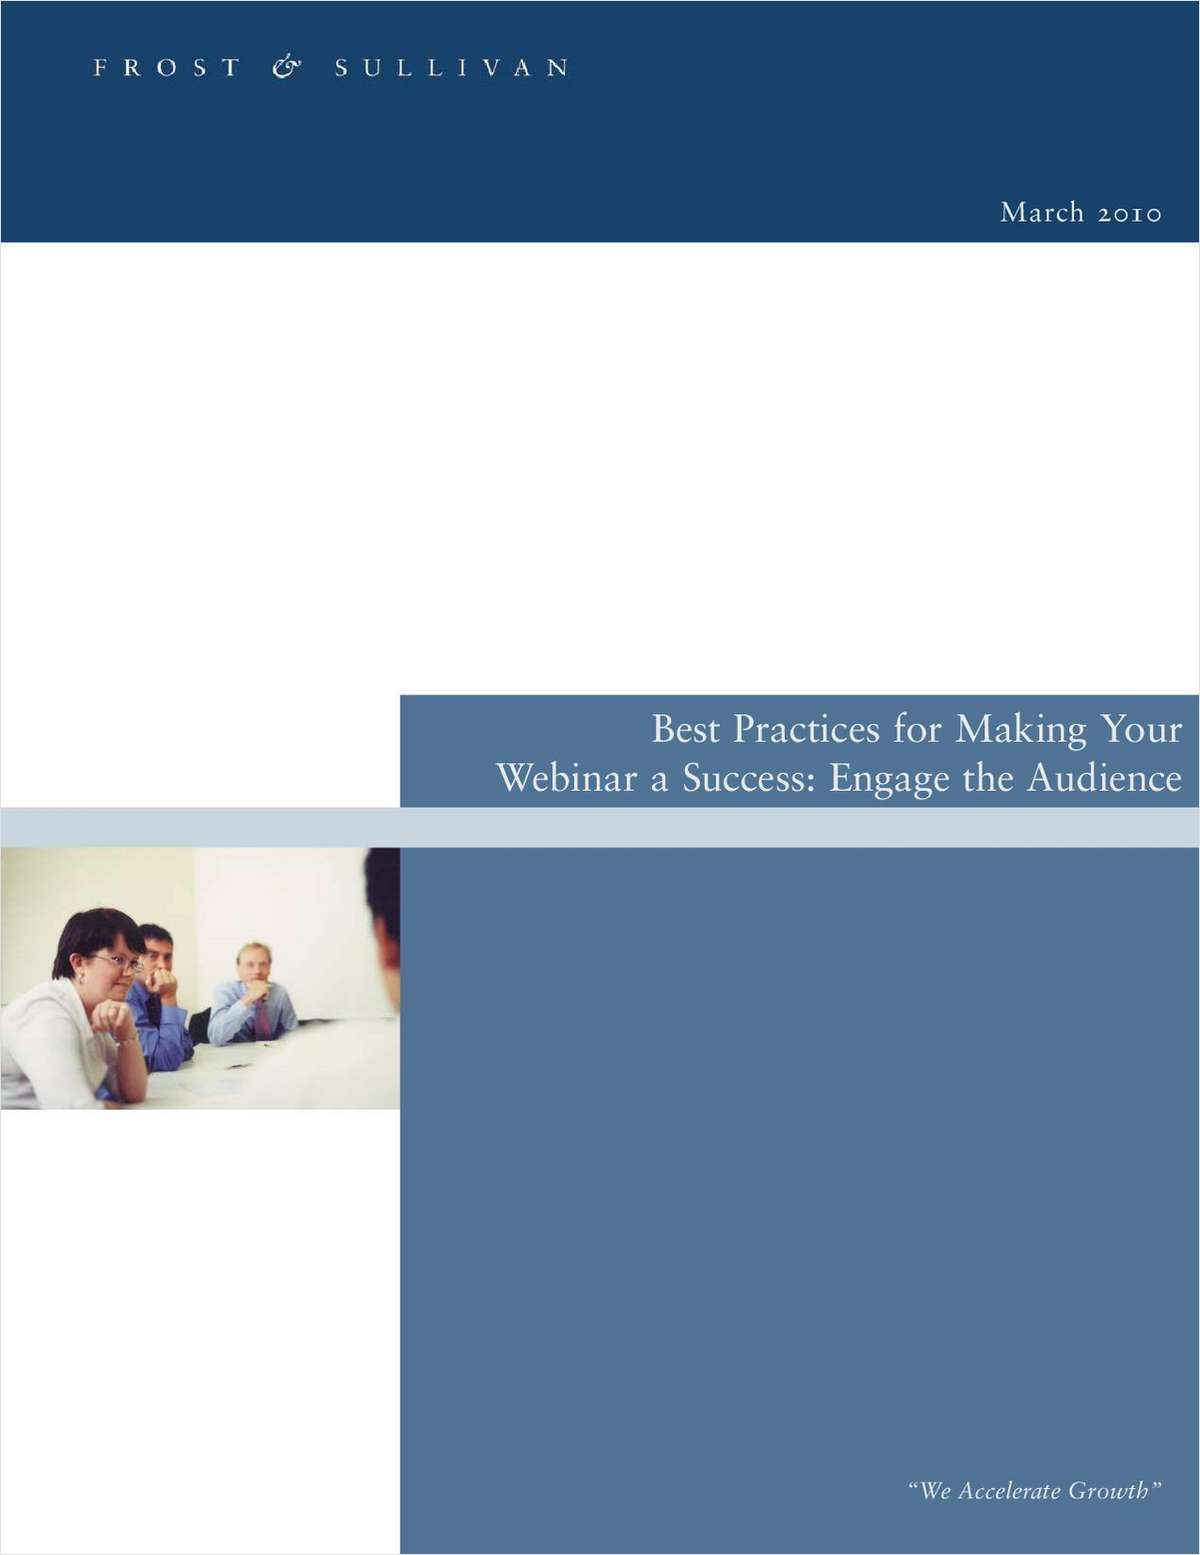 Best Practices for Making Your Webinar a Success - Engage the Audience